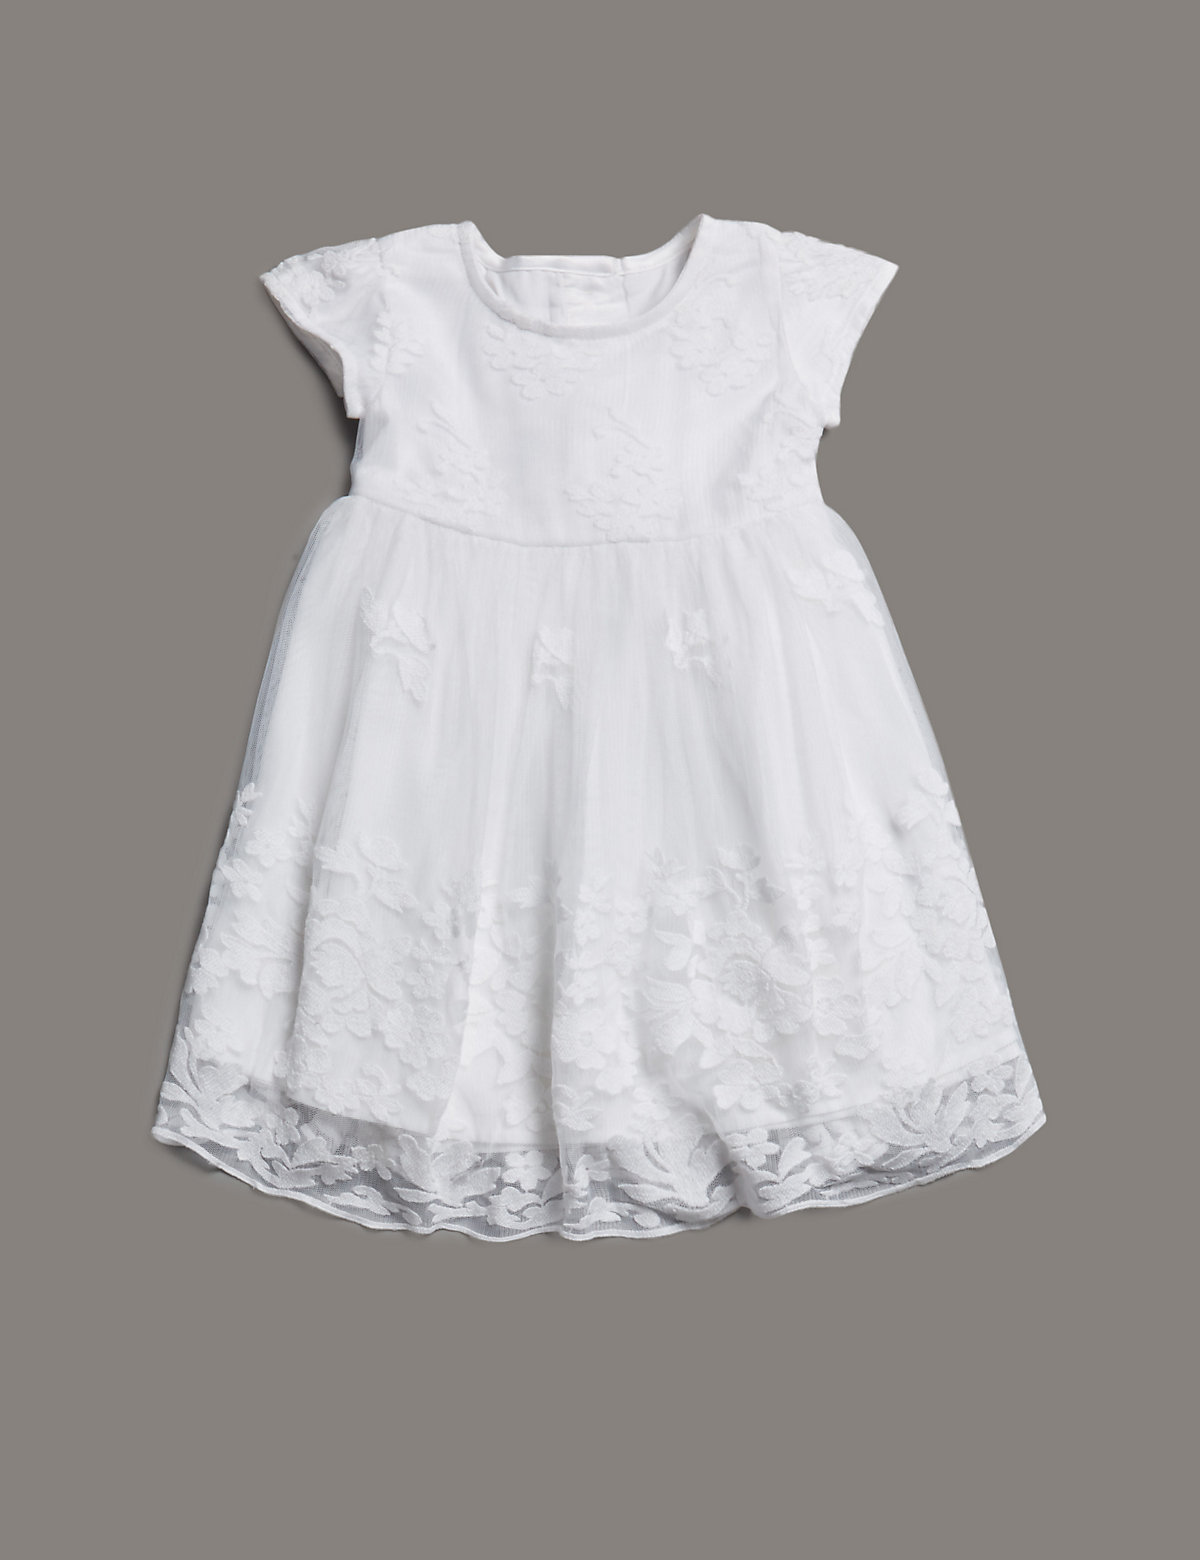 Autograph Lace Christening Dress